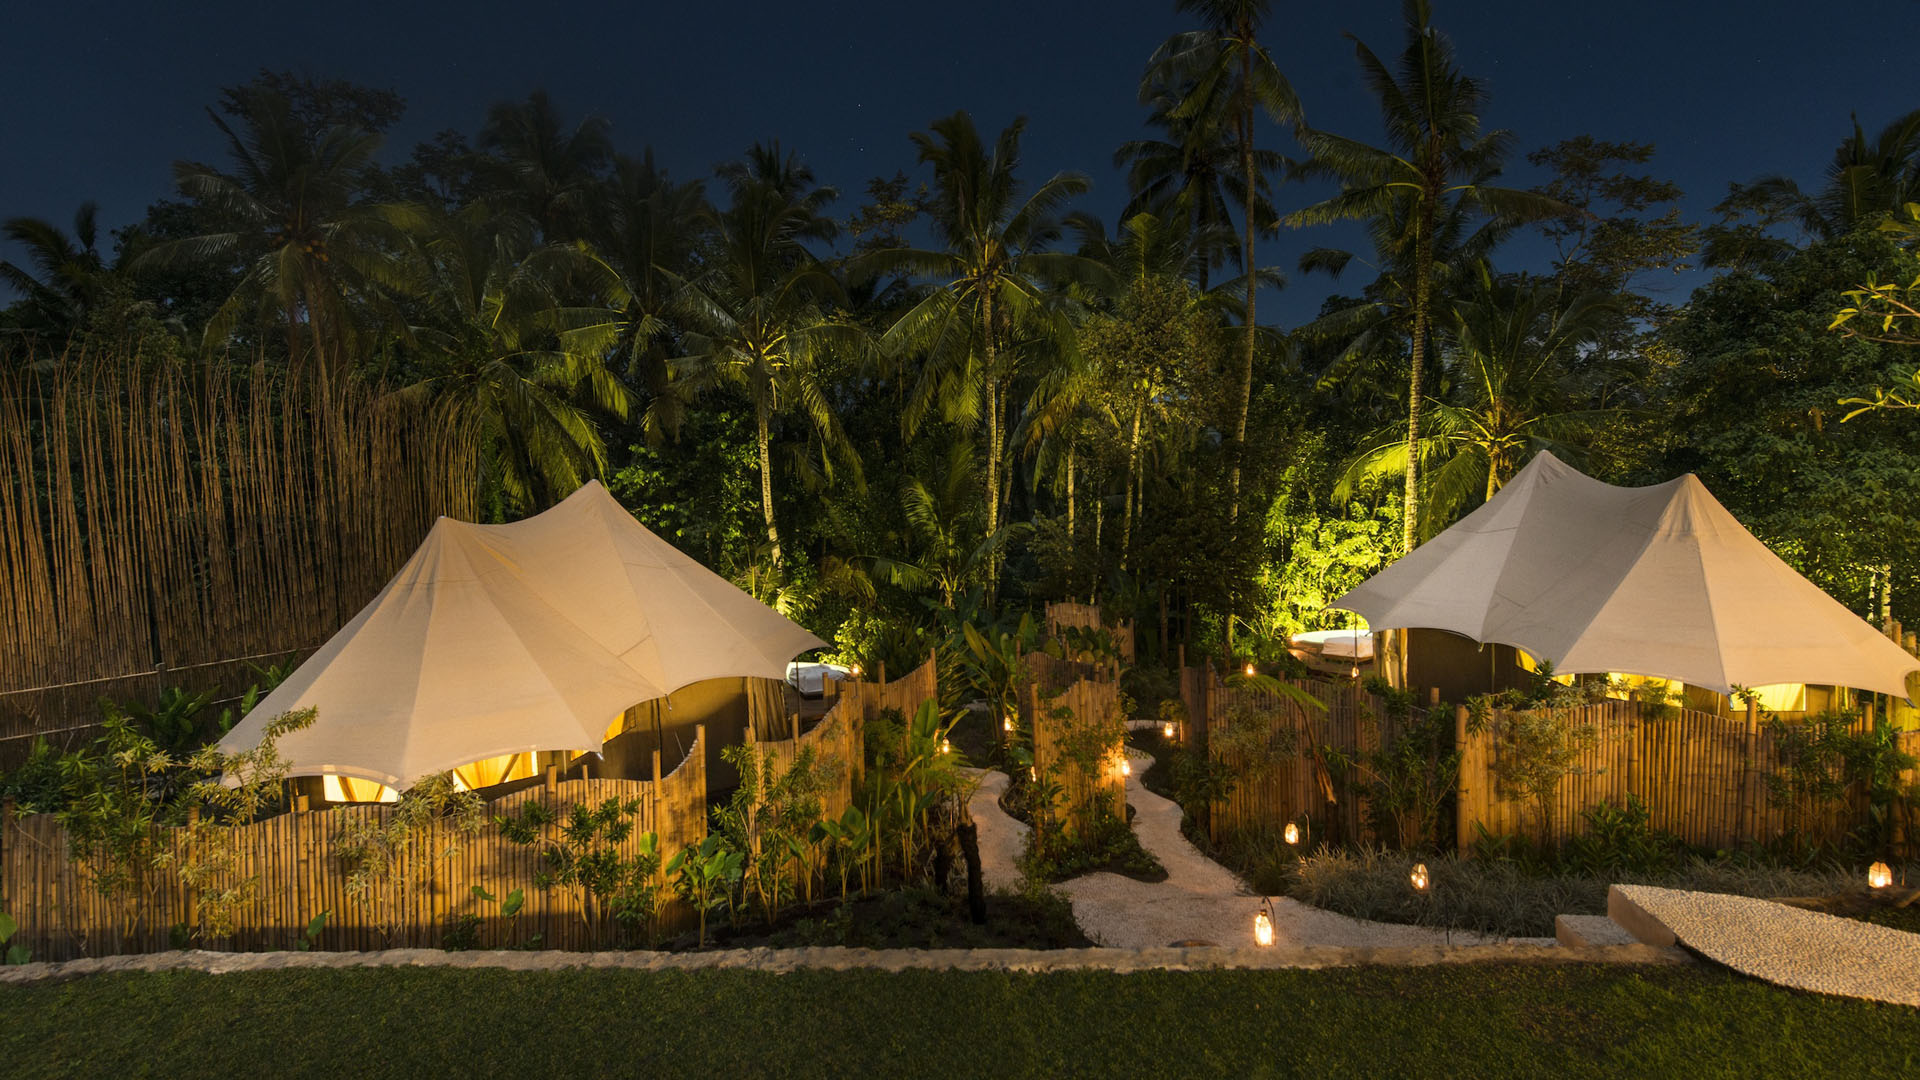 The Elegant Safari Style Tents at Sandat Glamping Tents